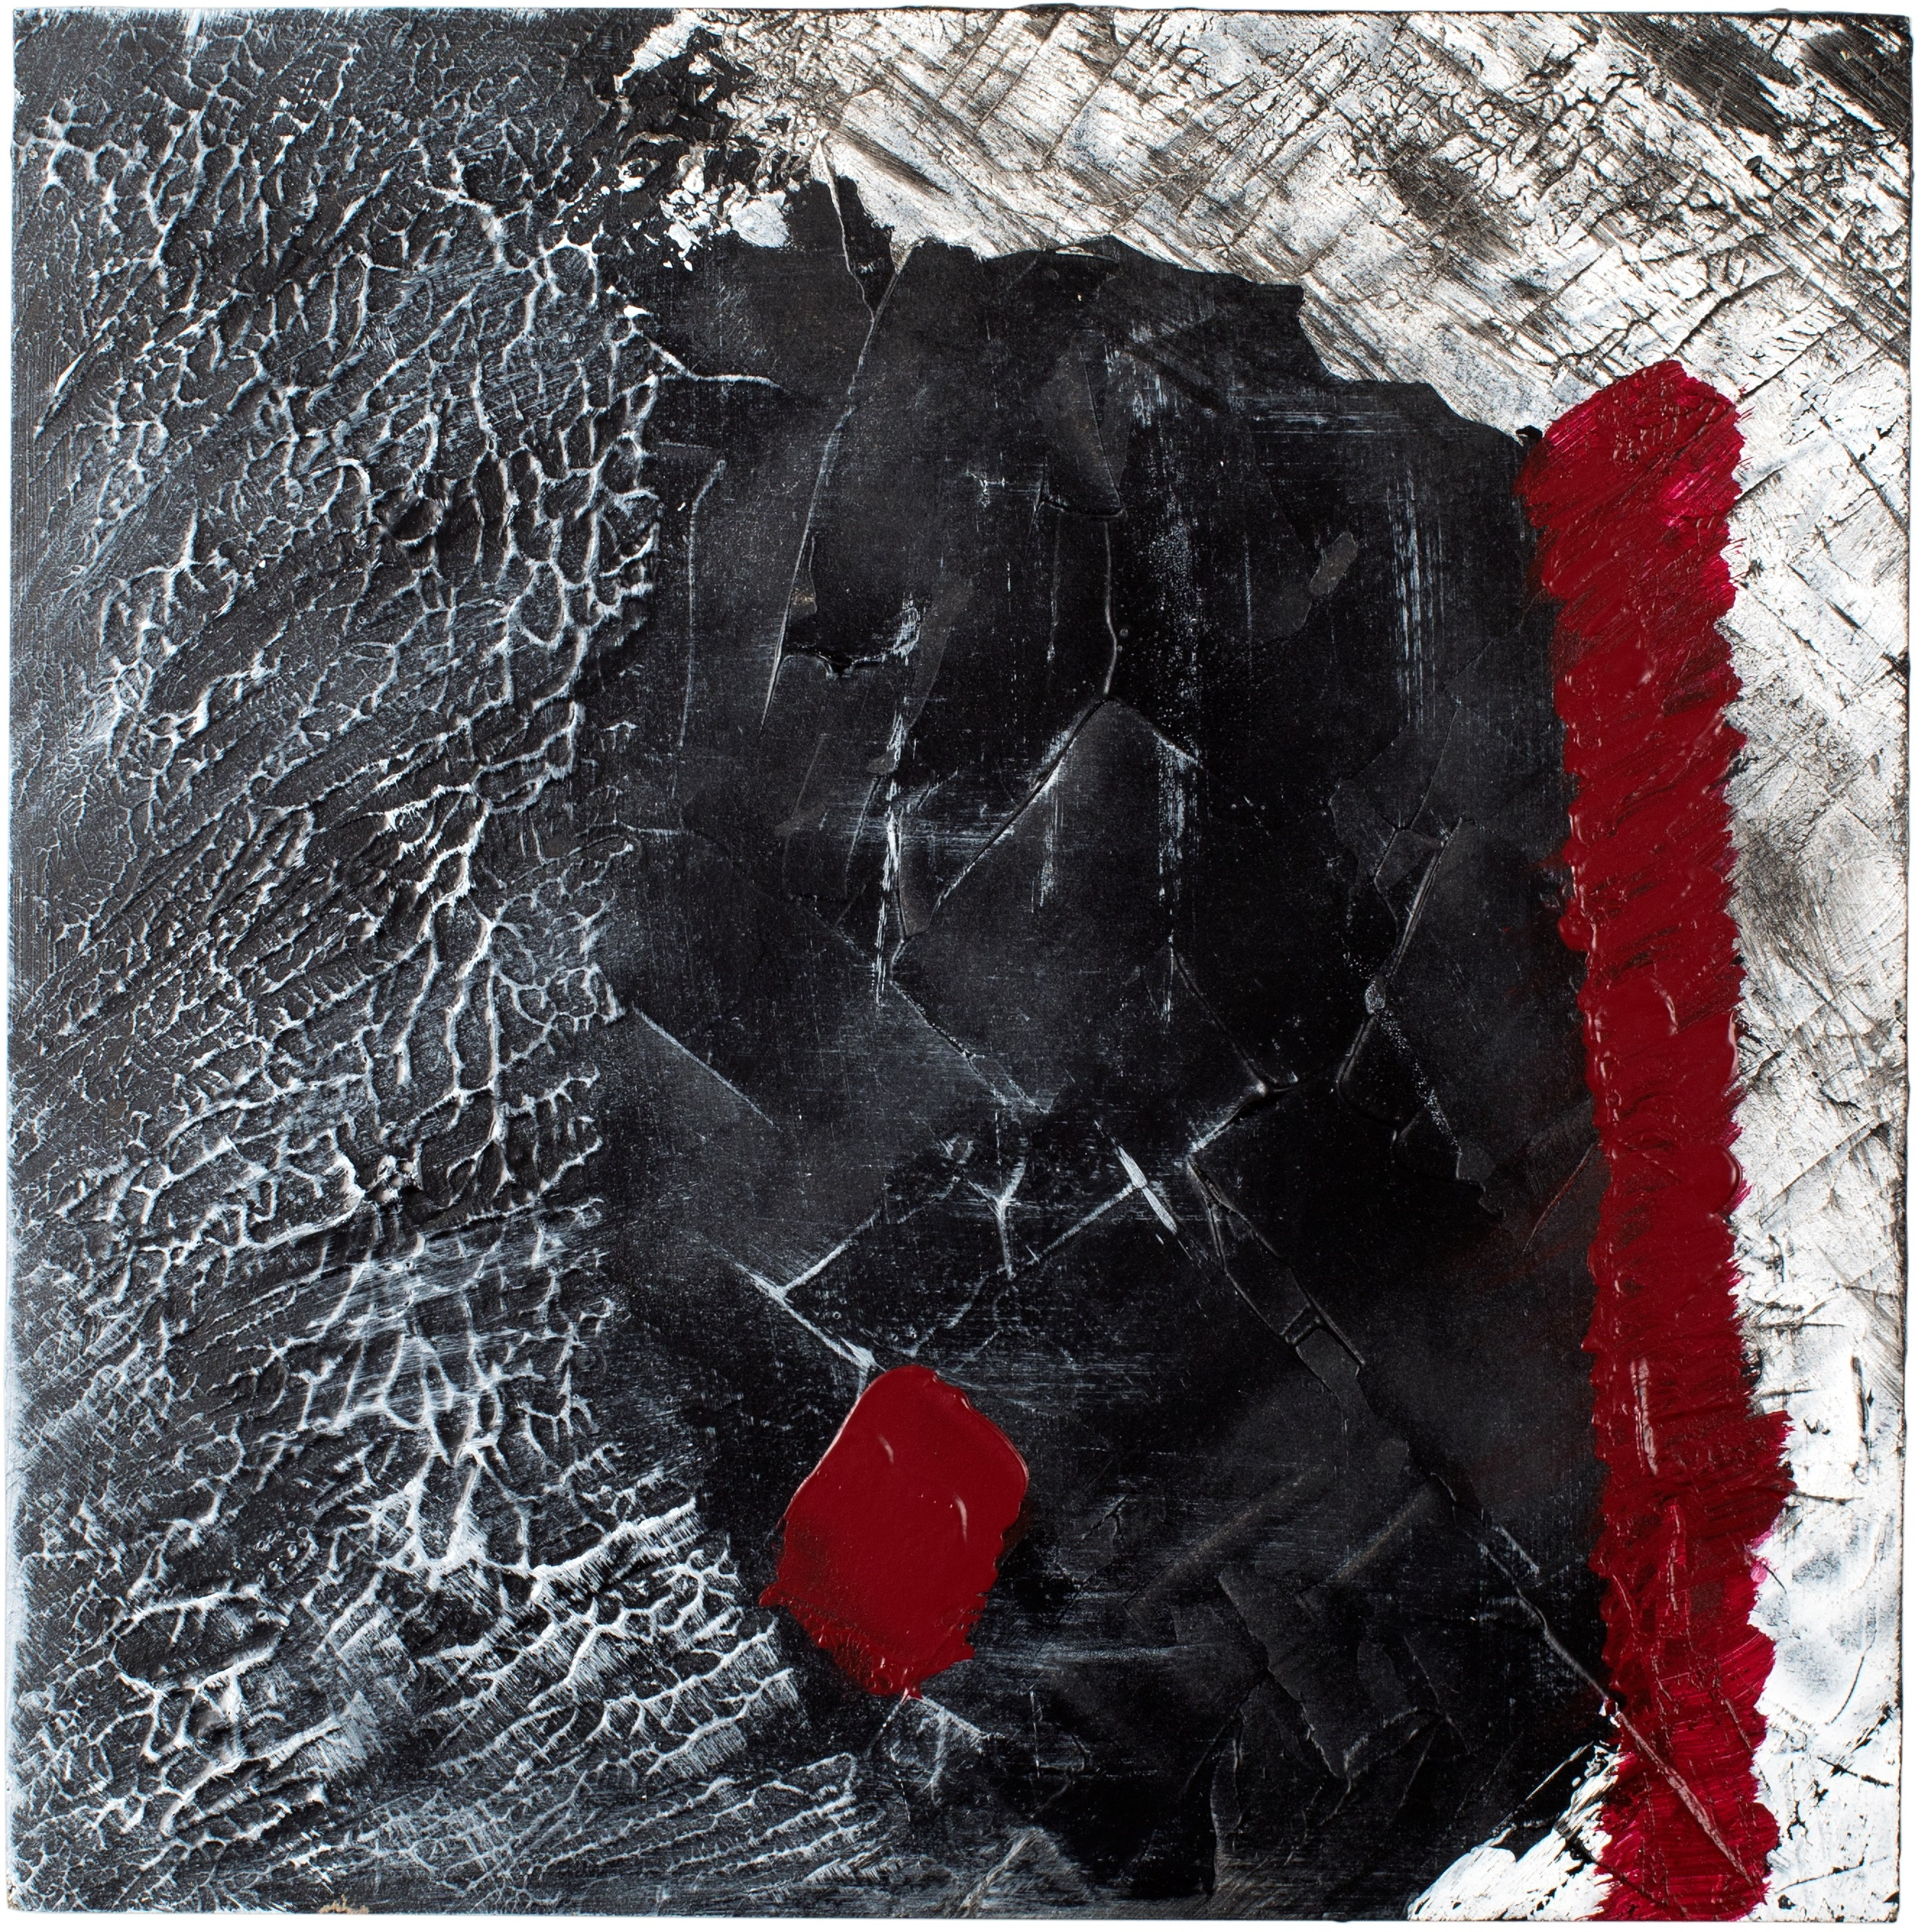 RIFLUSSO#2 - Acrylic on chipboard, 45x45cm - UNAVAILABLE